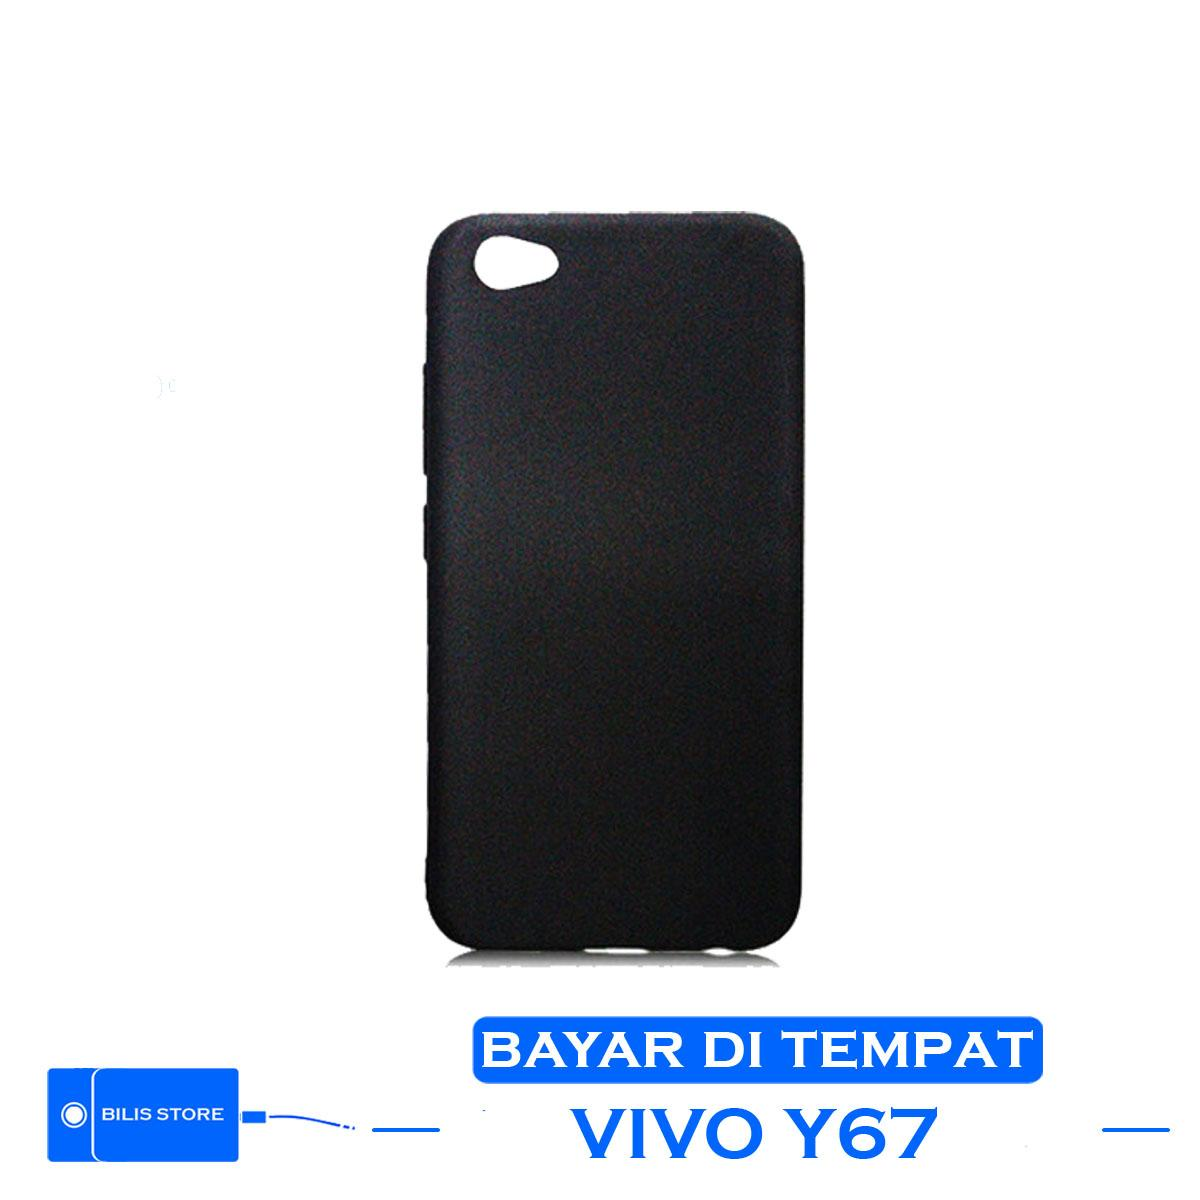 38 Harga Hp Vivo Hitam 2018 Motomo Y21 Back Case Hardcase Color Ultraslim Y67 Black Silikon Shockproof Casing